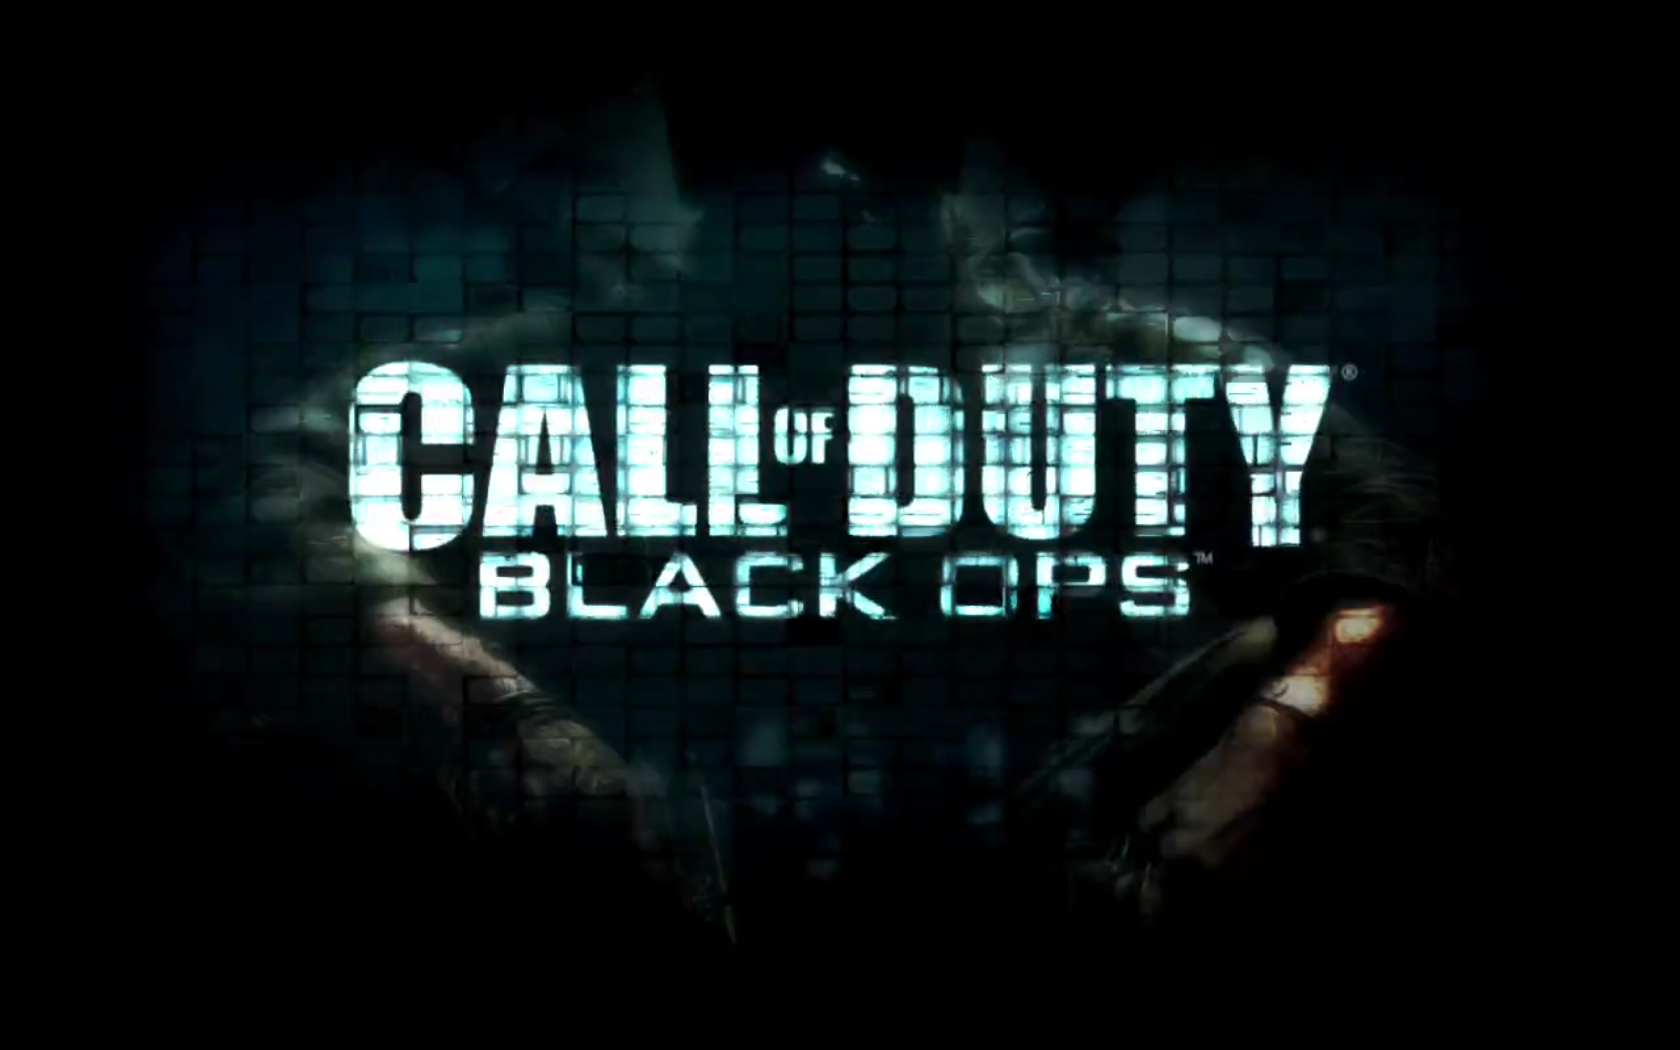 http://fc00.deviantart.net/fs70/f/2010/121/a/d/Call_of_Duty__Black_Ops_Wall01_by_floxx001.png